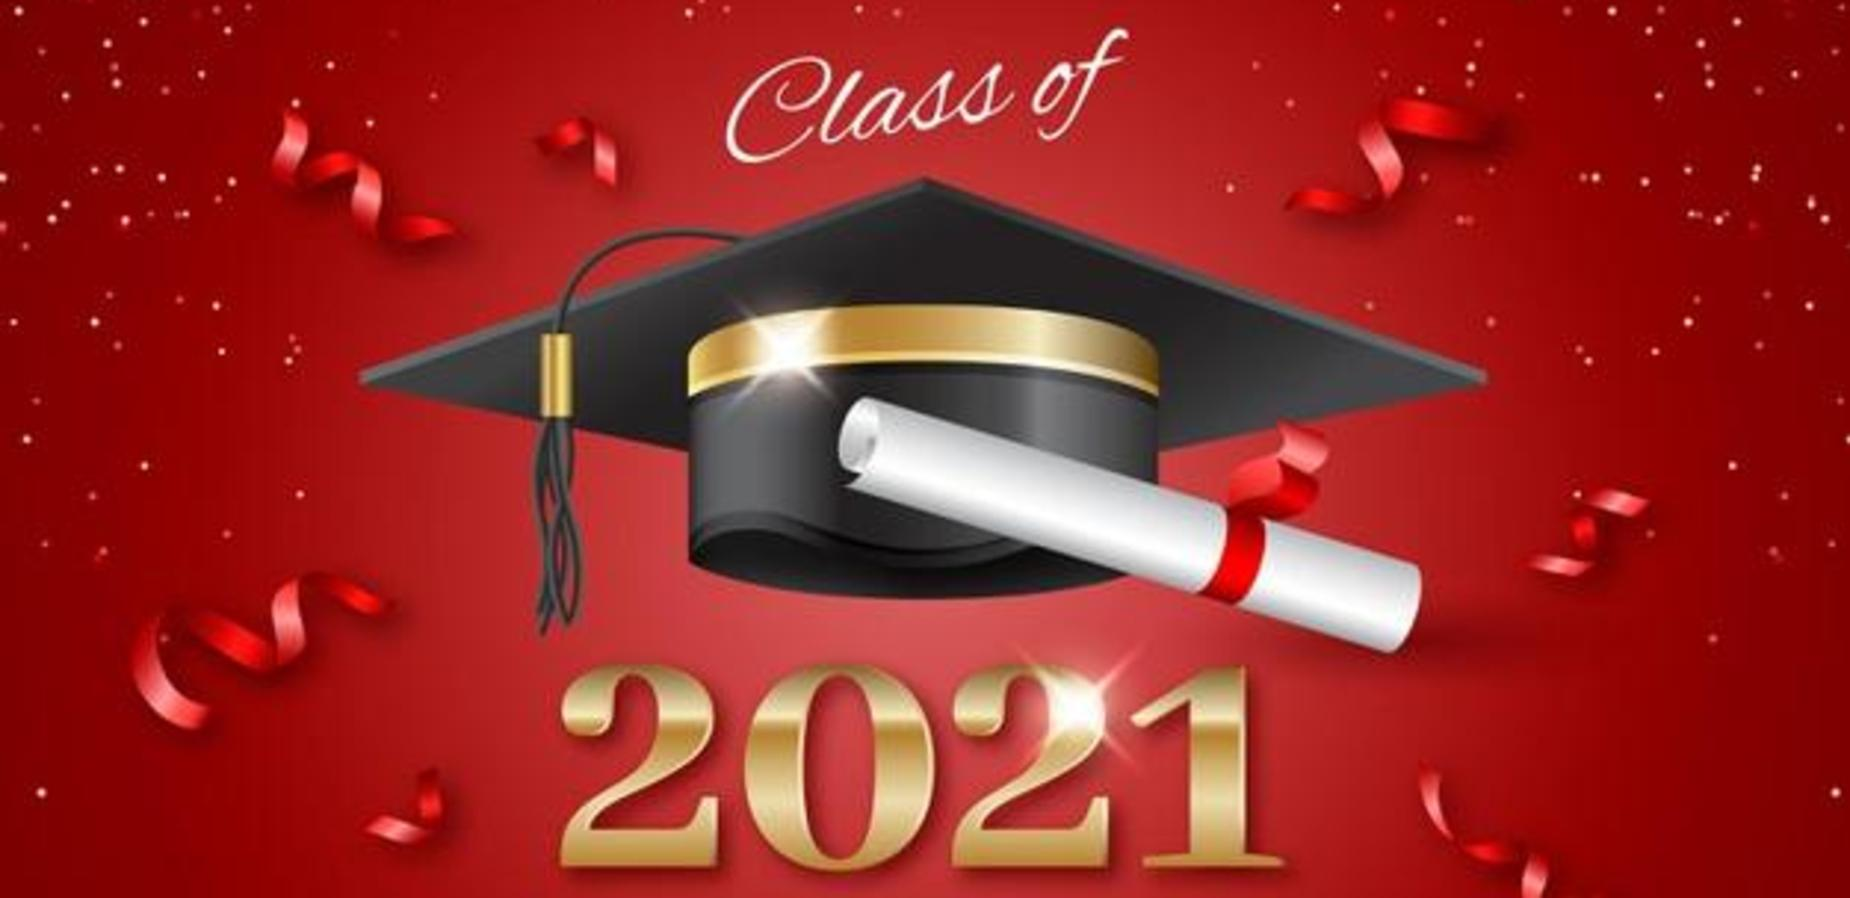 Red background with a graduation hat and red swirls.